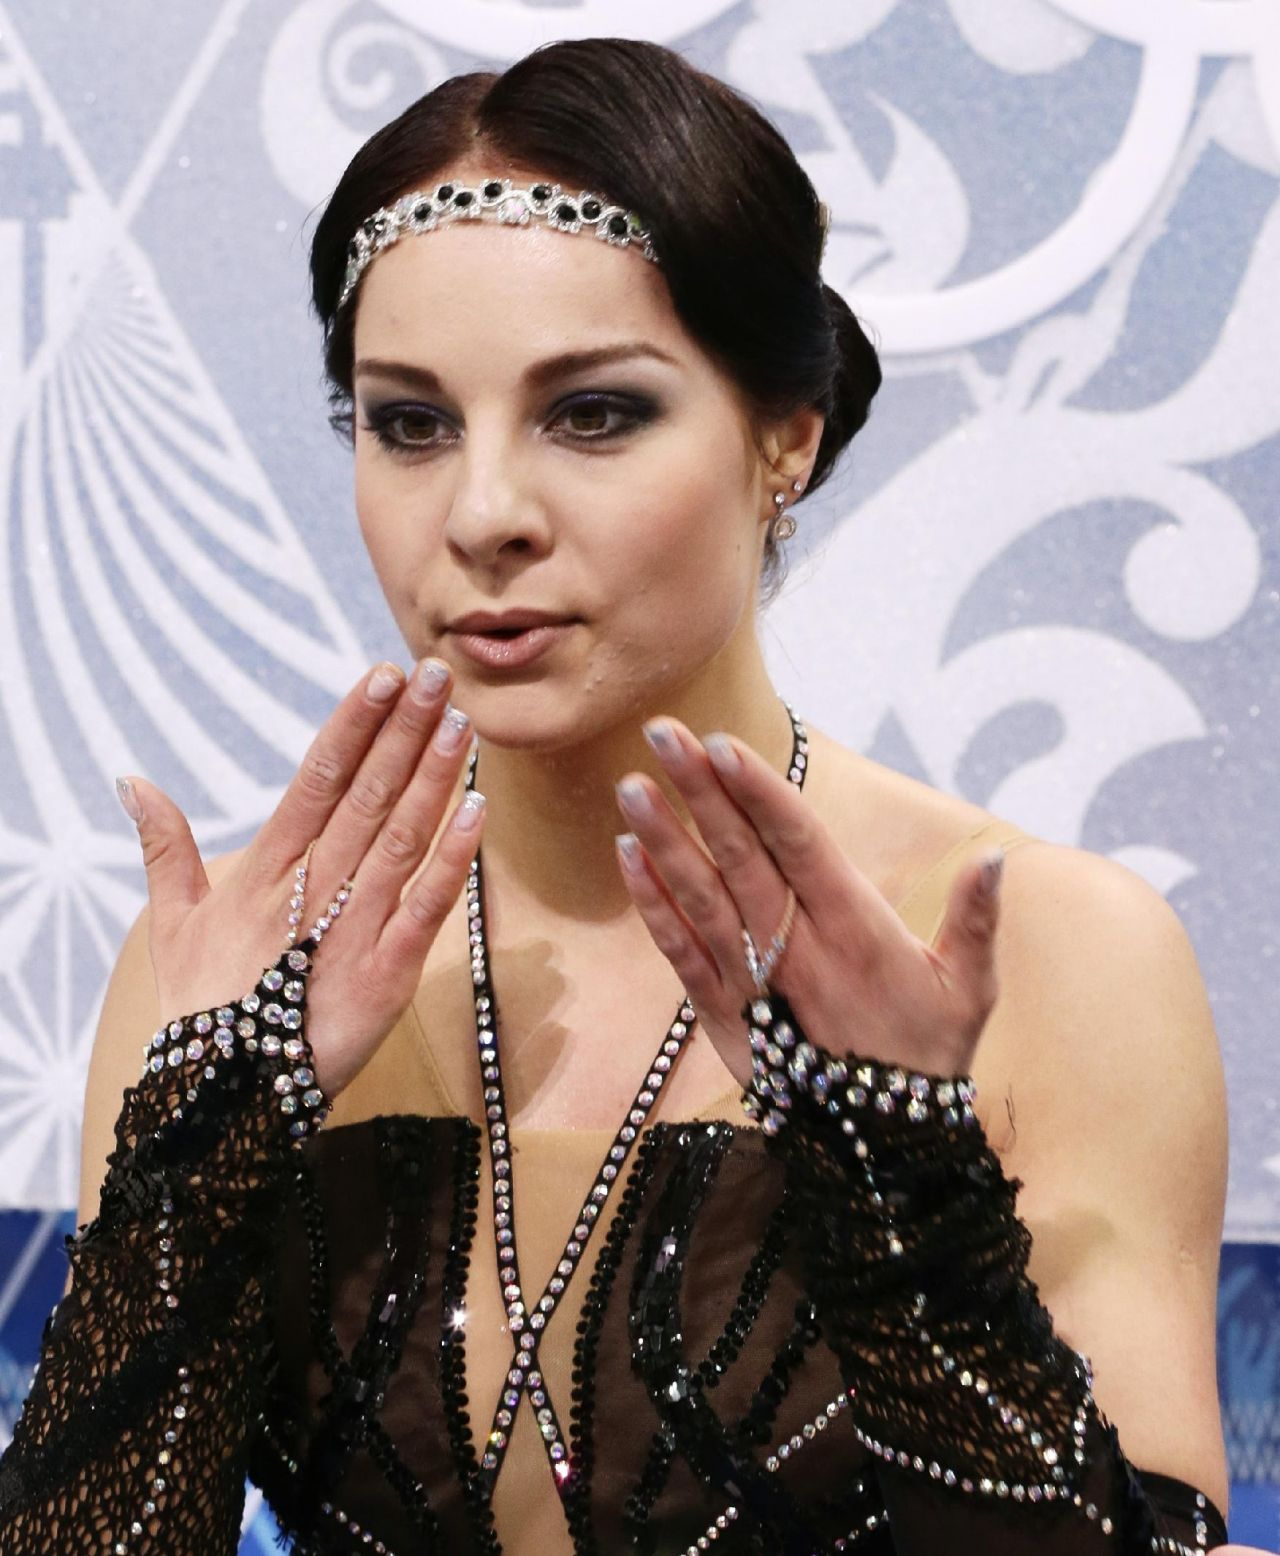 Jelena Glebova - 2014 Sochi Winter Olympics - Women's Figure Skating